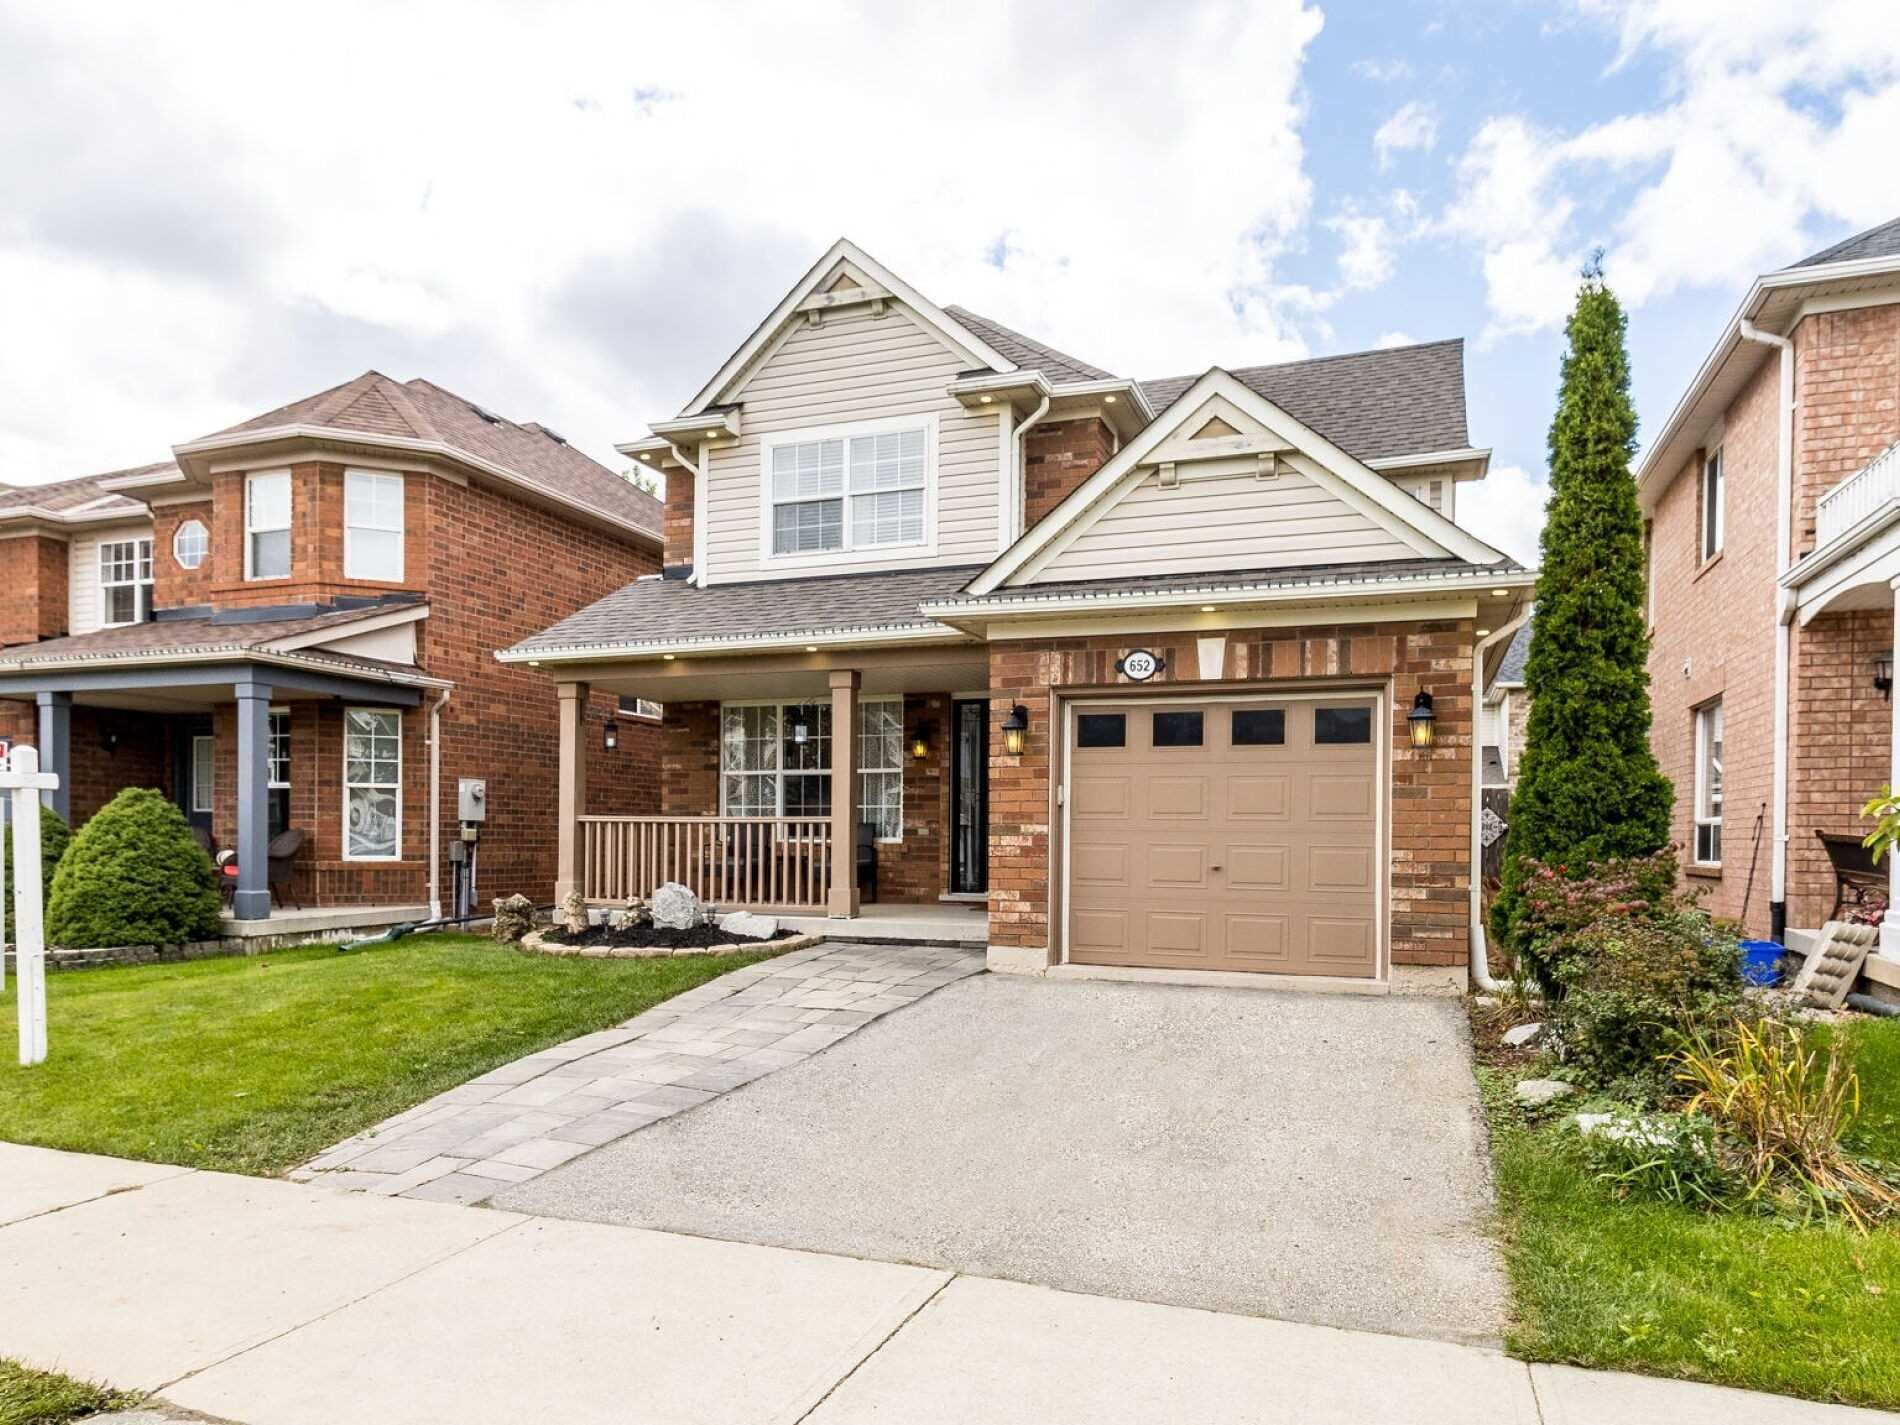 652 Armstrong Blvd, Milton, ON L9T6G8 - MLS#: W5408903